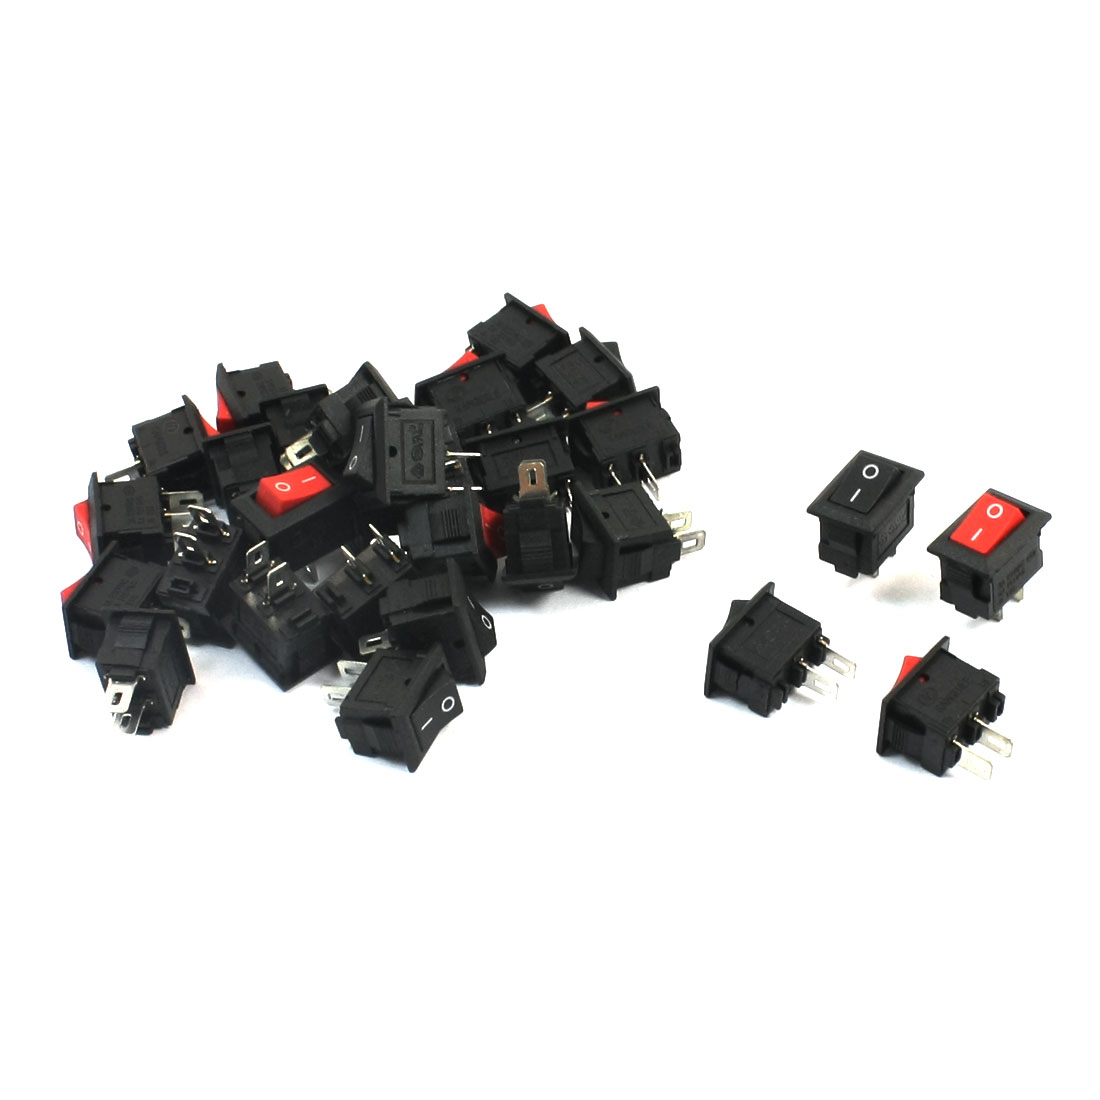 30Pcs AC250V 3A AC125V 6A 2 Terminals 2P ON/OFF SPST Snap in Rectangle Boat Rocker Switch